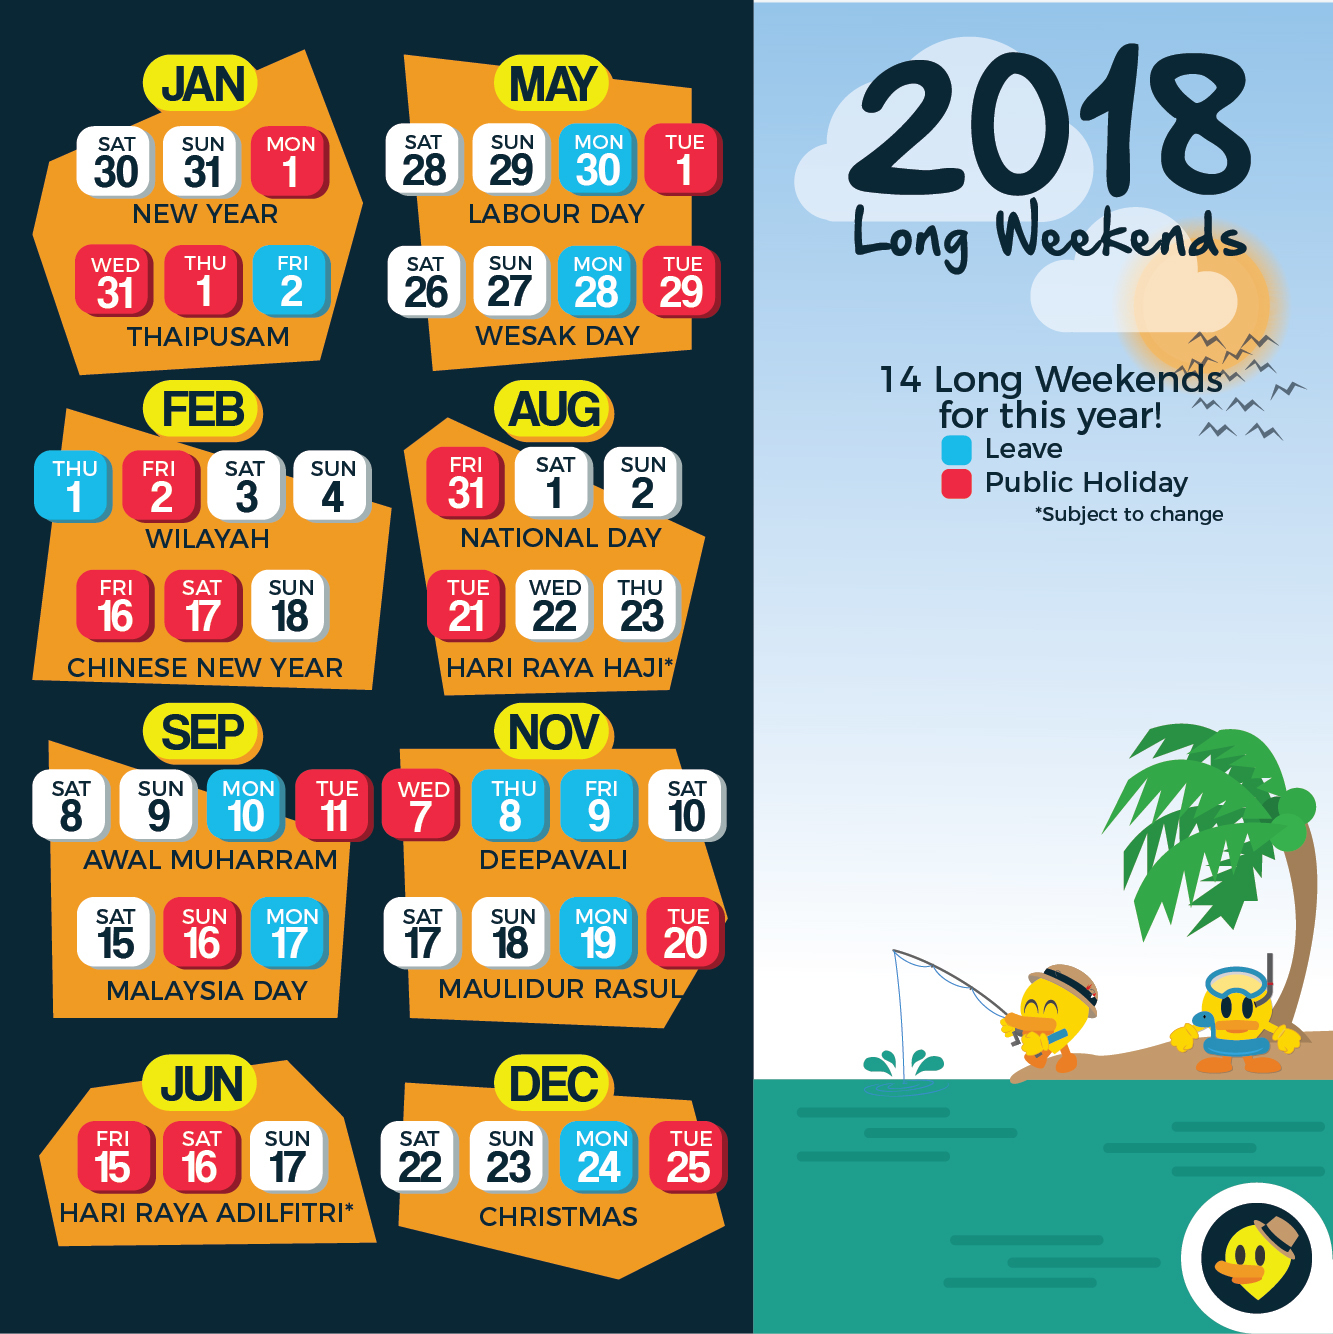 School Hoildays Updated With School Holiday 12 Long Weekends For Malaysia In 2019